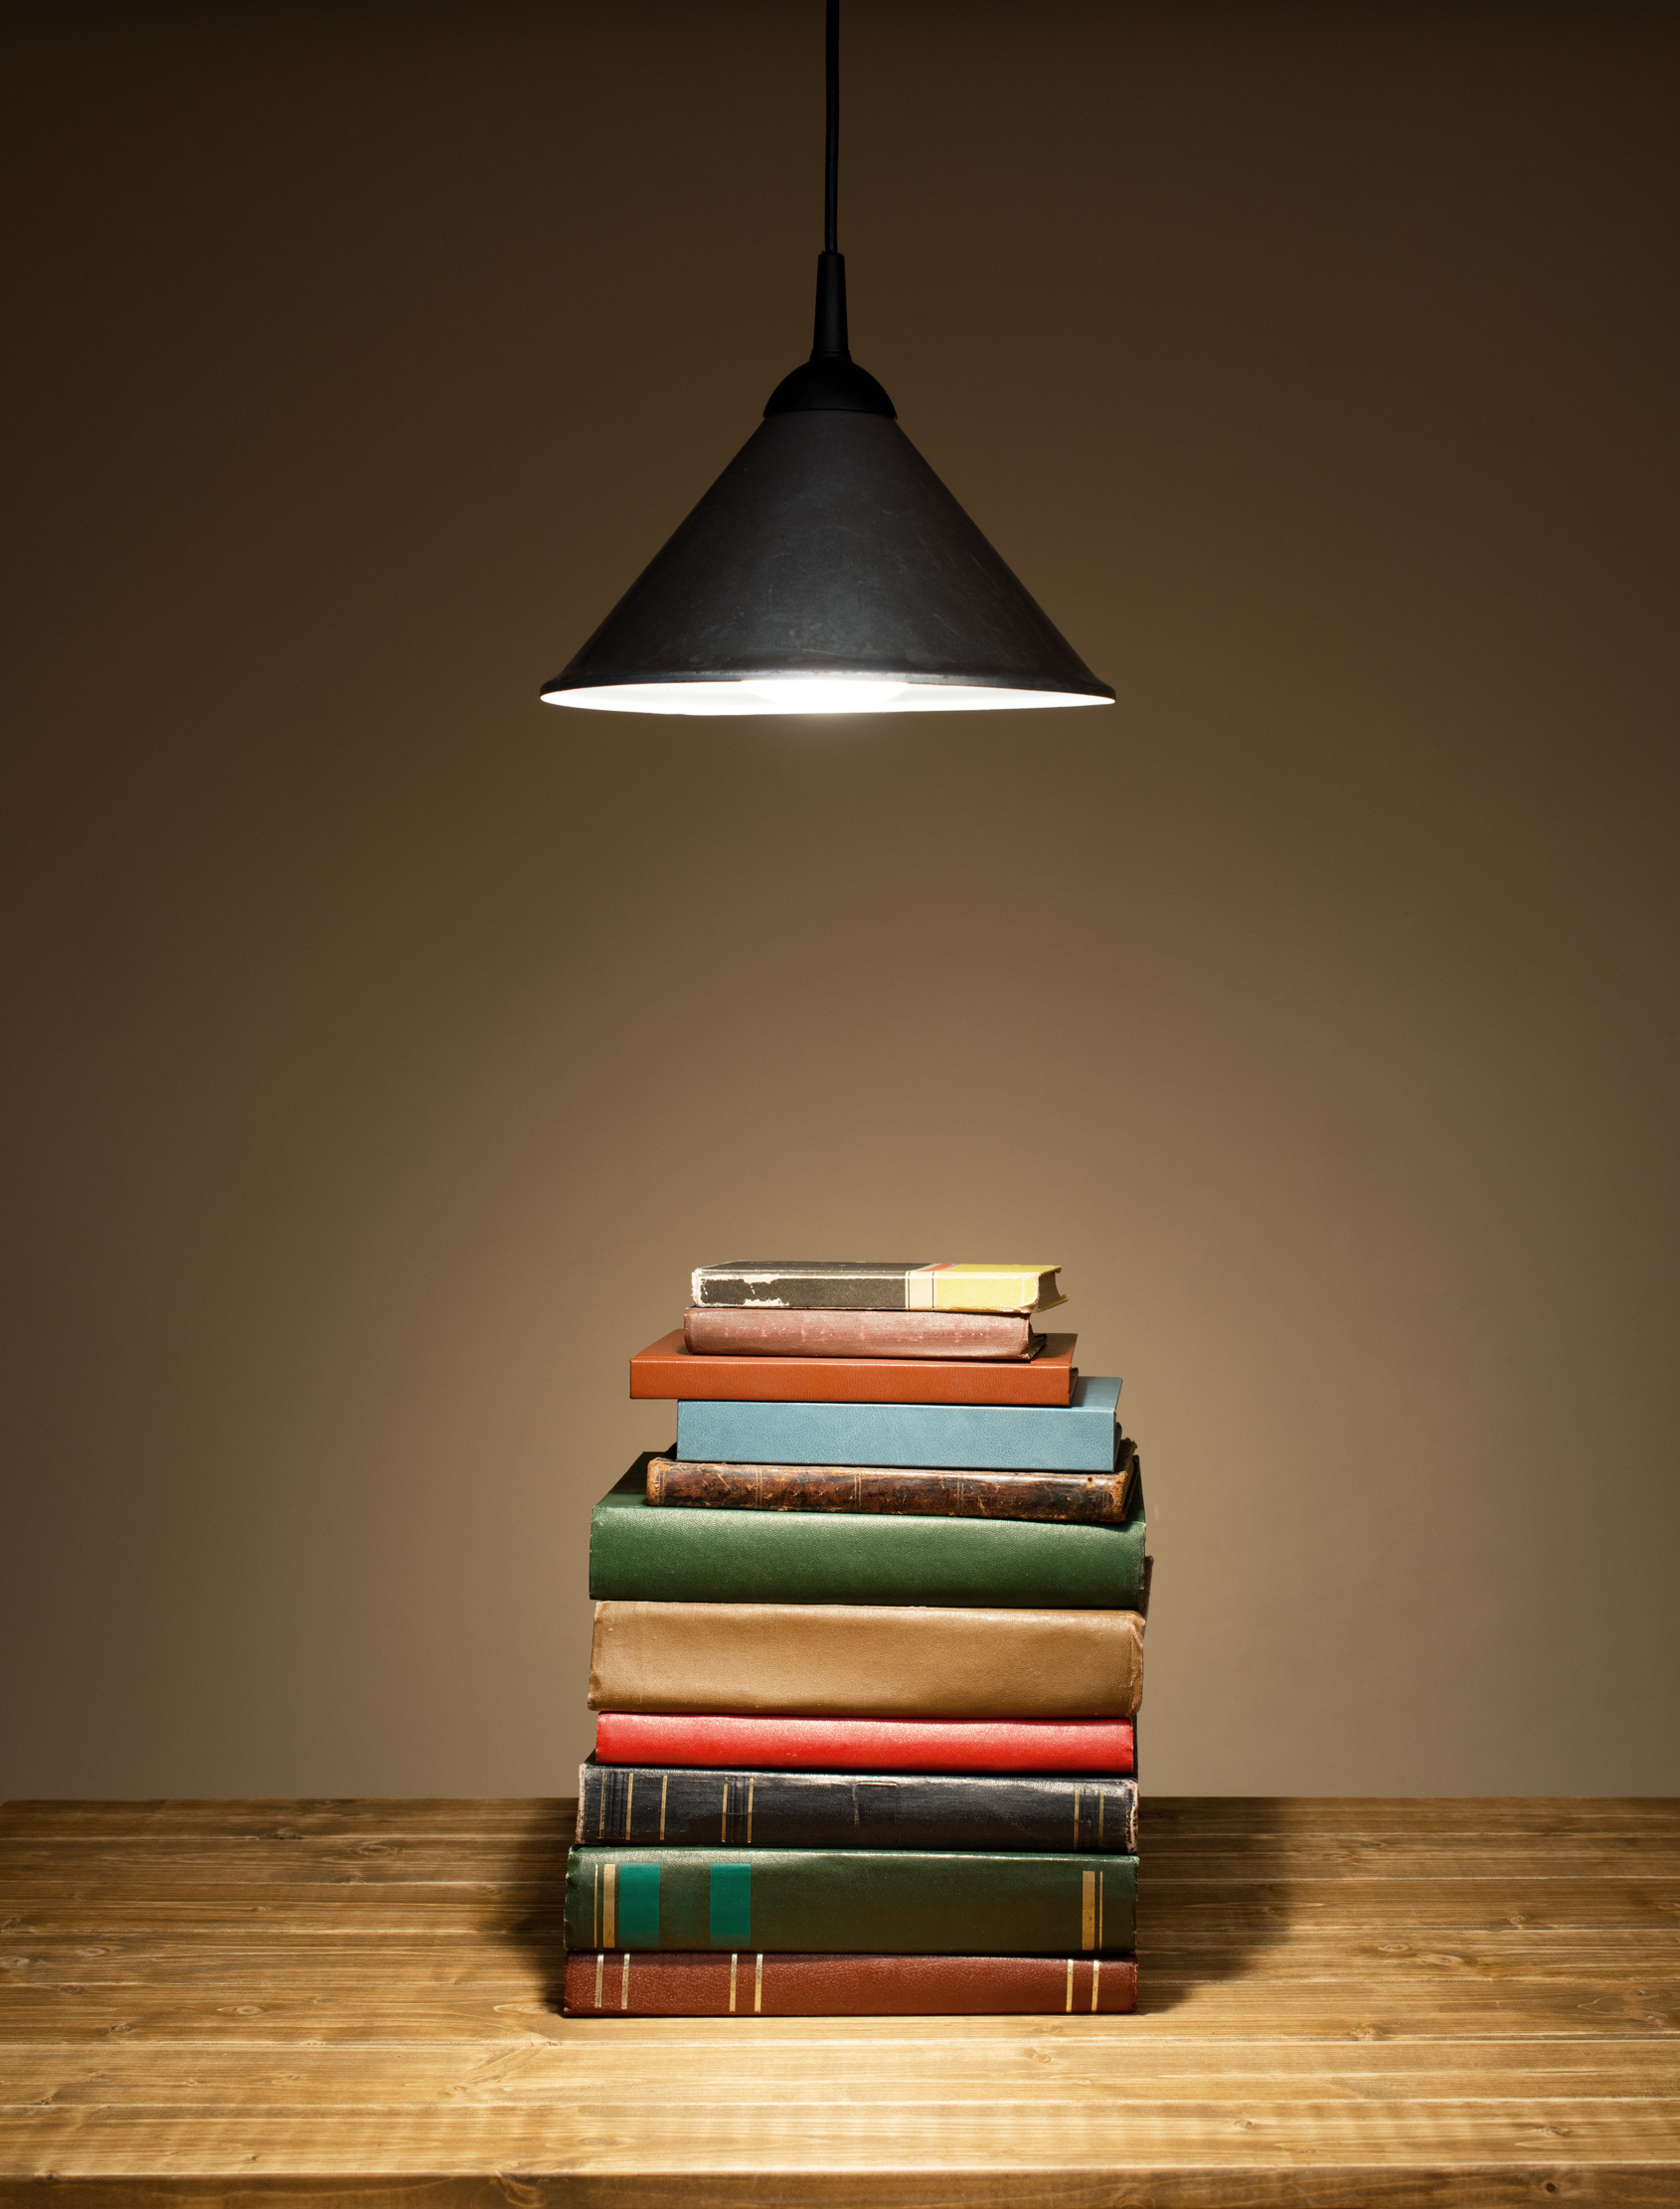 A pile of books are stacked on a wooden table.